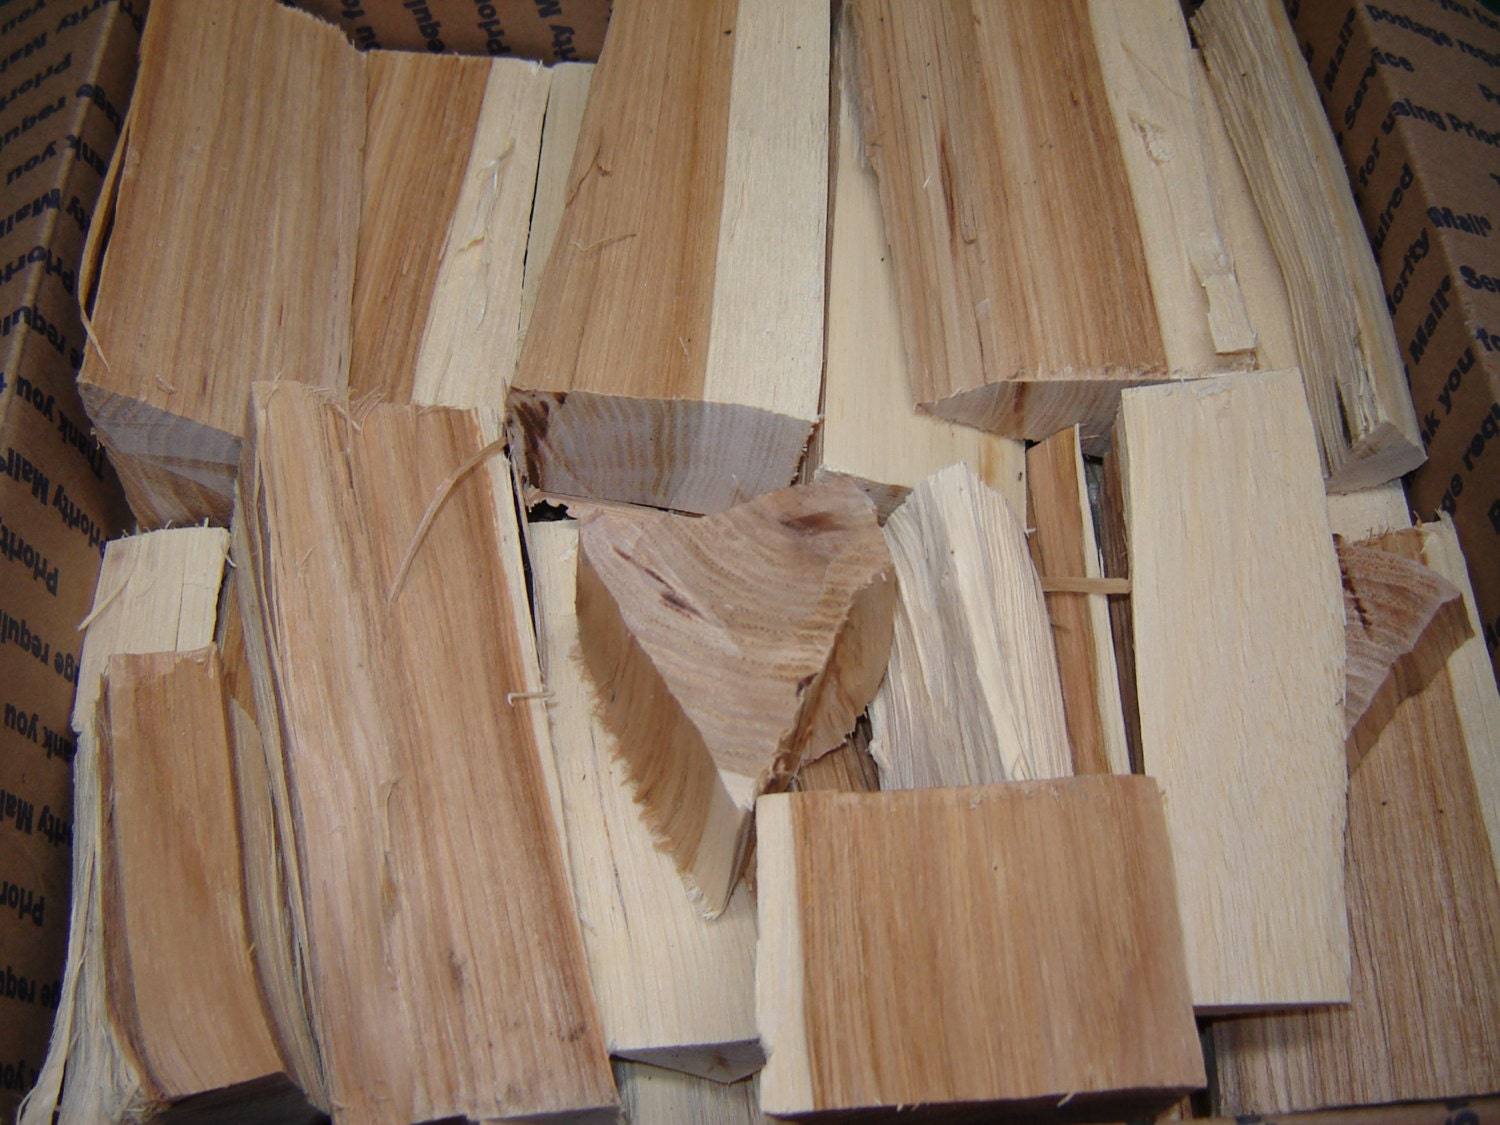 Pignut Hickory Wood Chunks For Grilling Smoking No Bark Oil